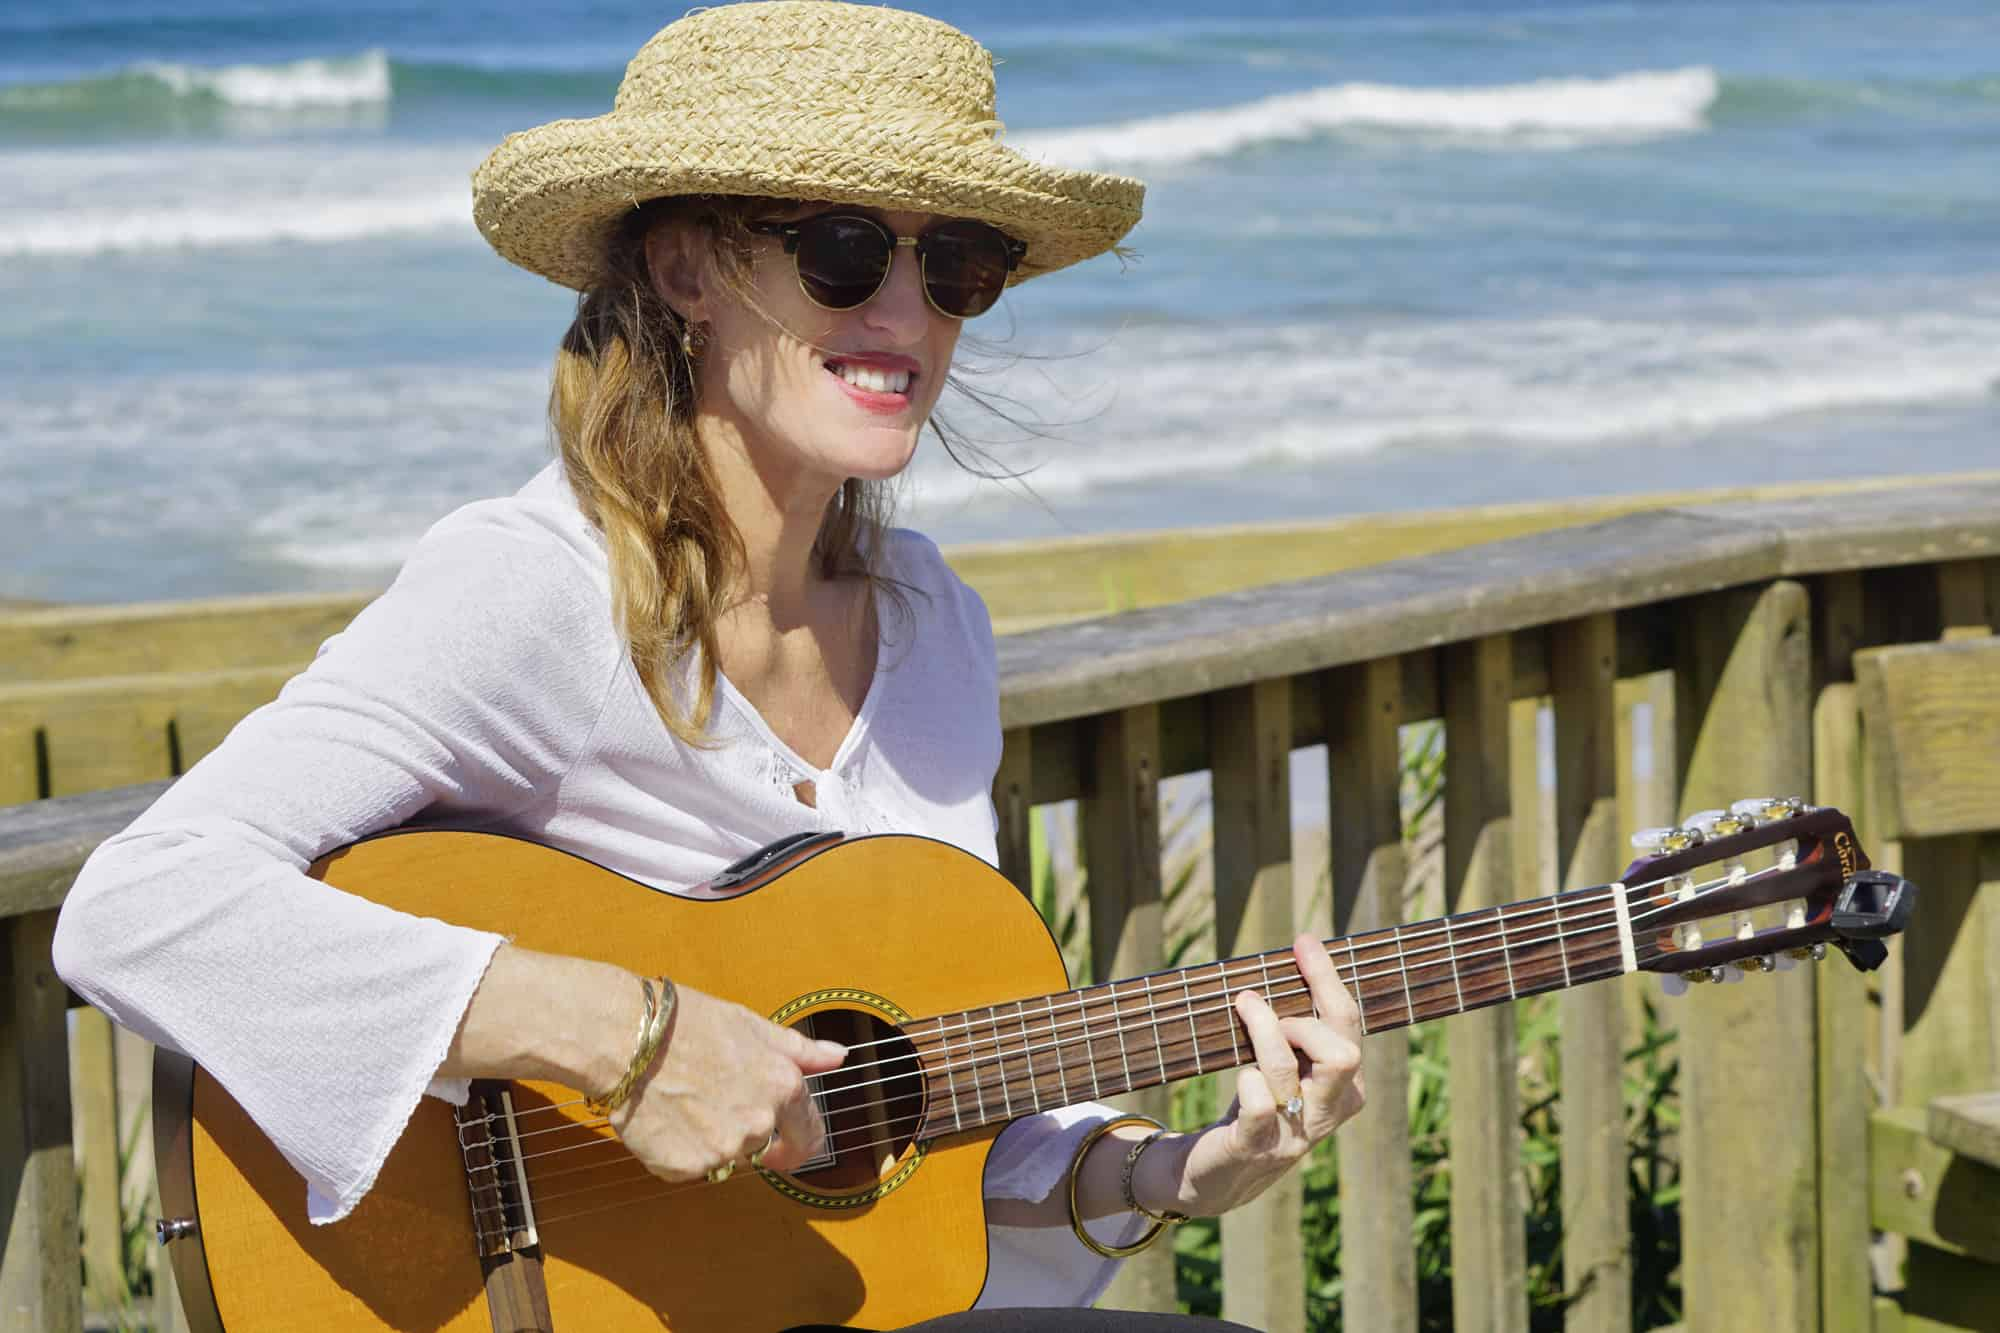 A woman in a straw hat playing classical guitar with the ocean behind her